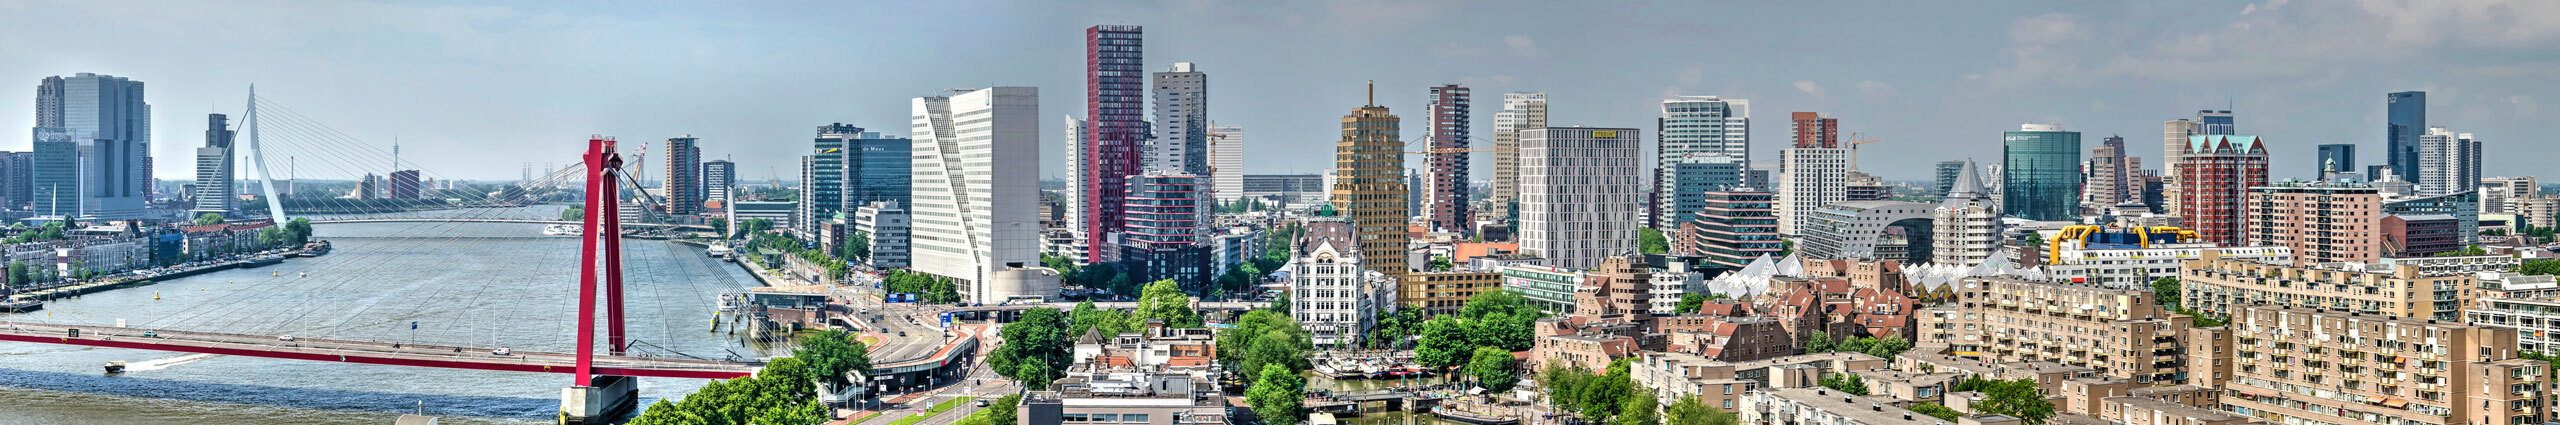 EXLUSIVE RESIDENCES FOR RENT IN ROTTERDAM AND SURROUNDINGS